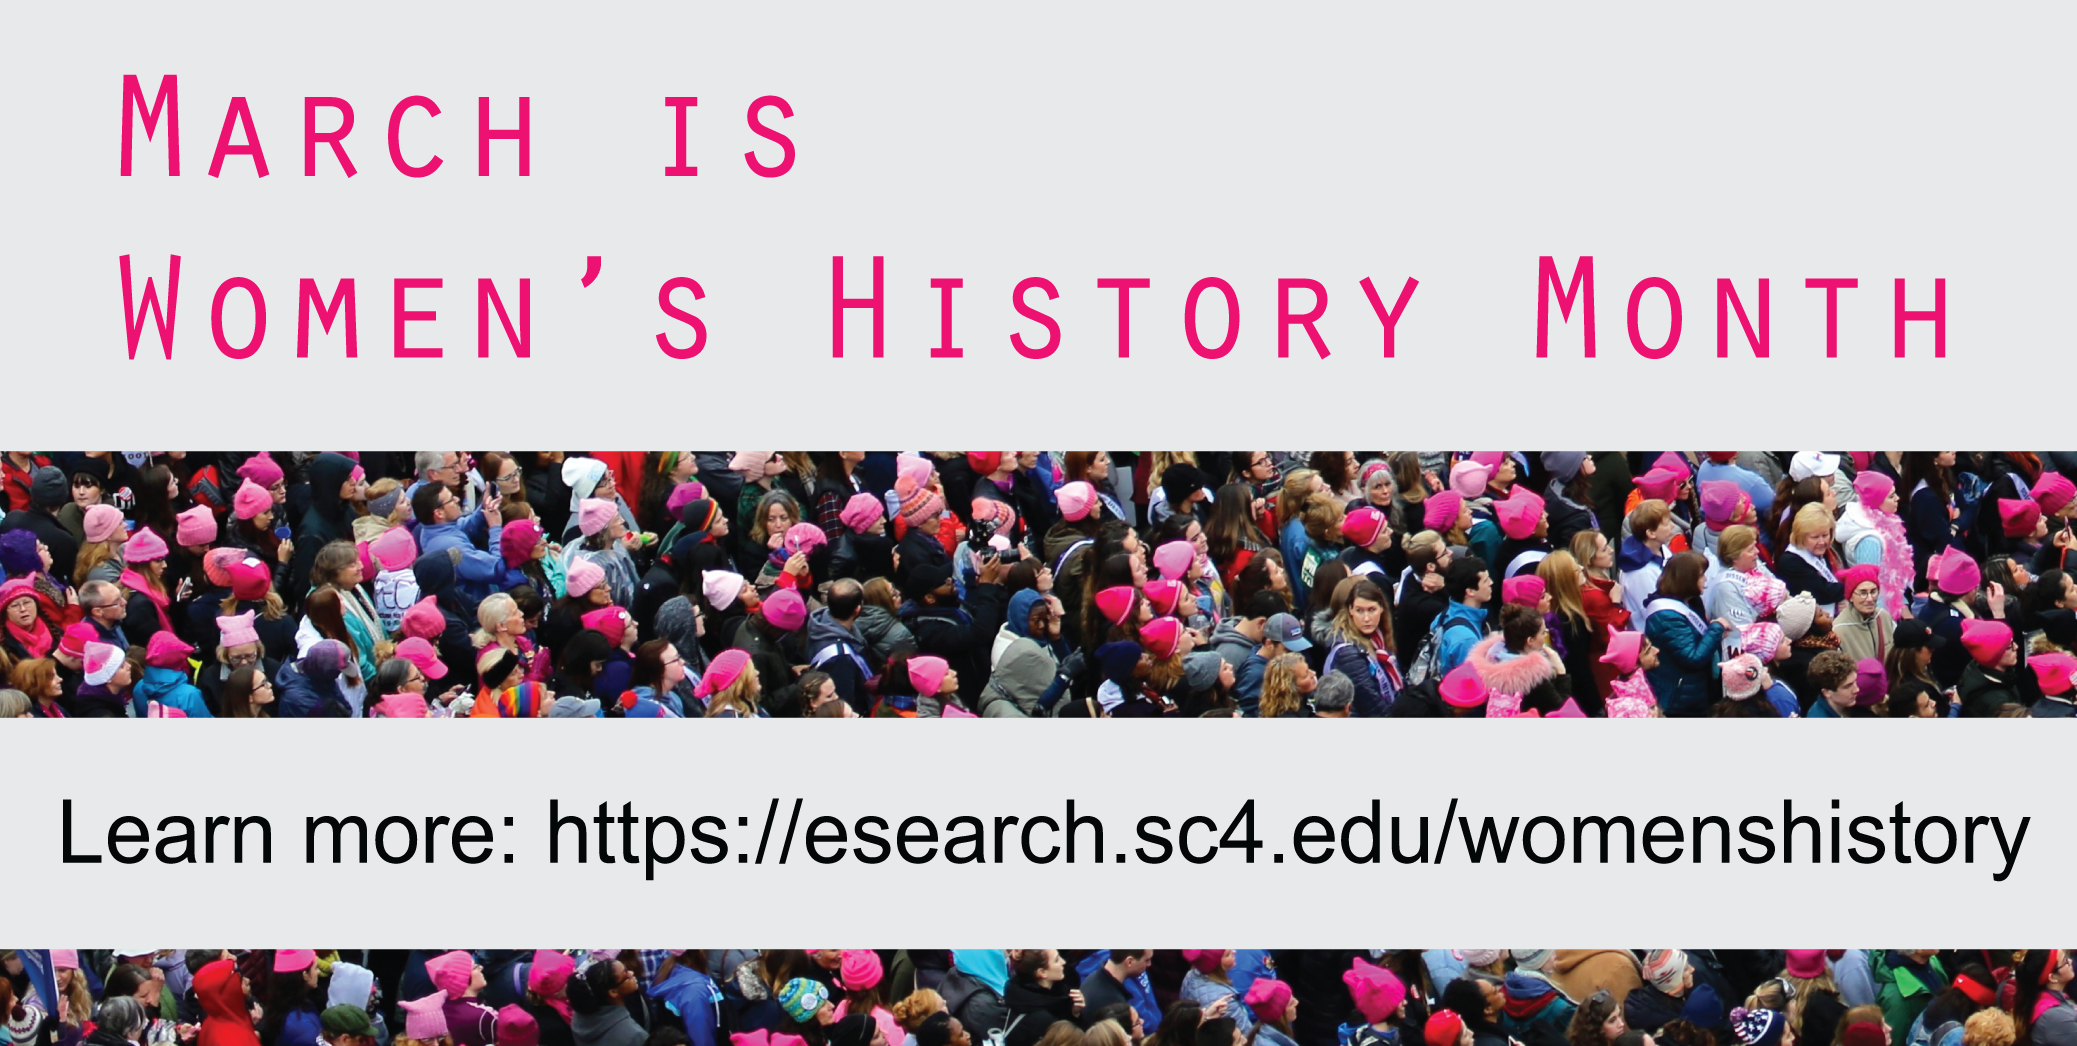 Women's History Month Research Guide